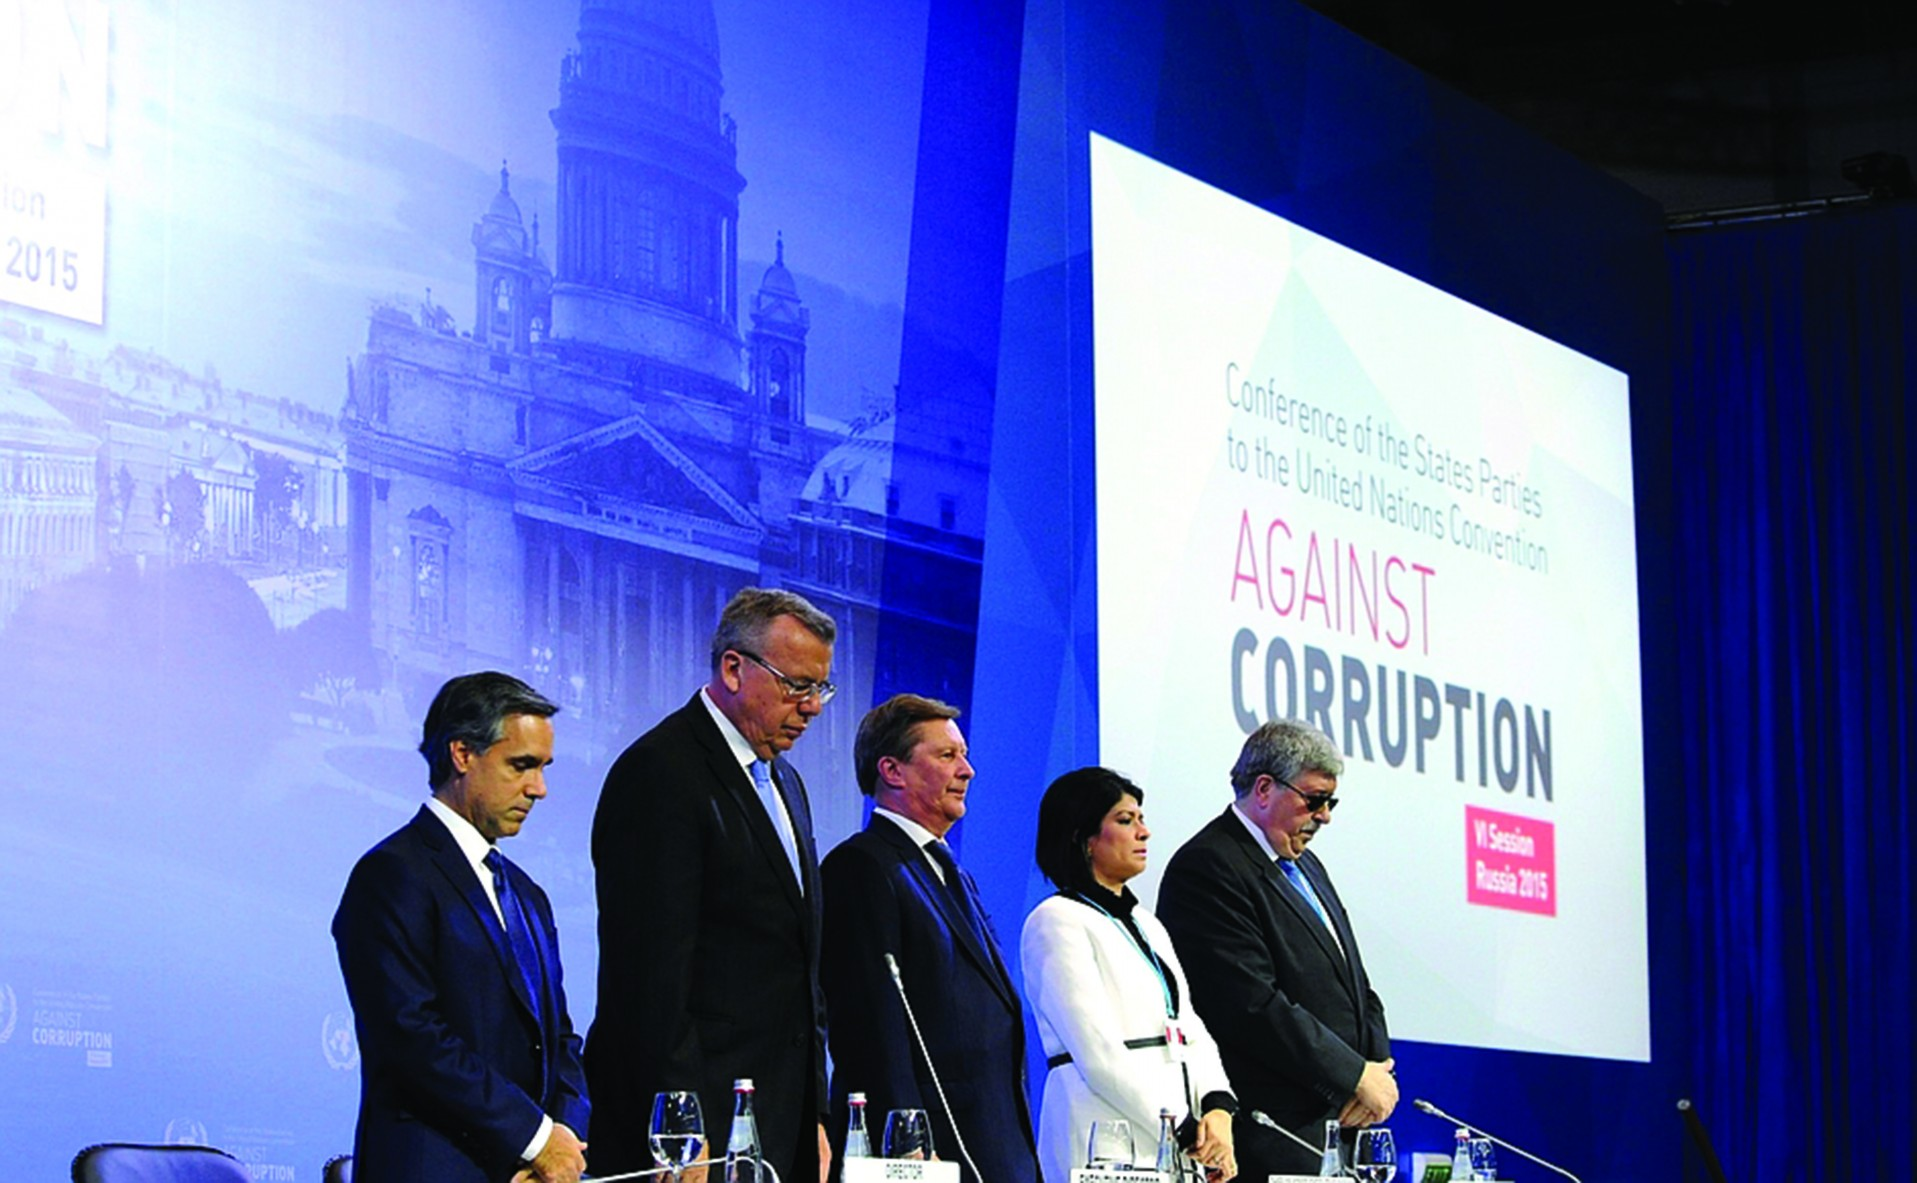 Grand corruption and the  international law option